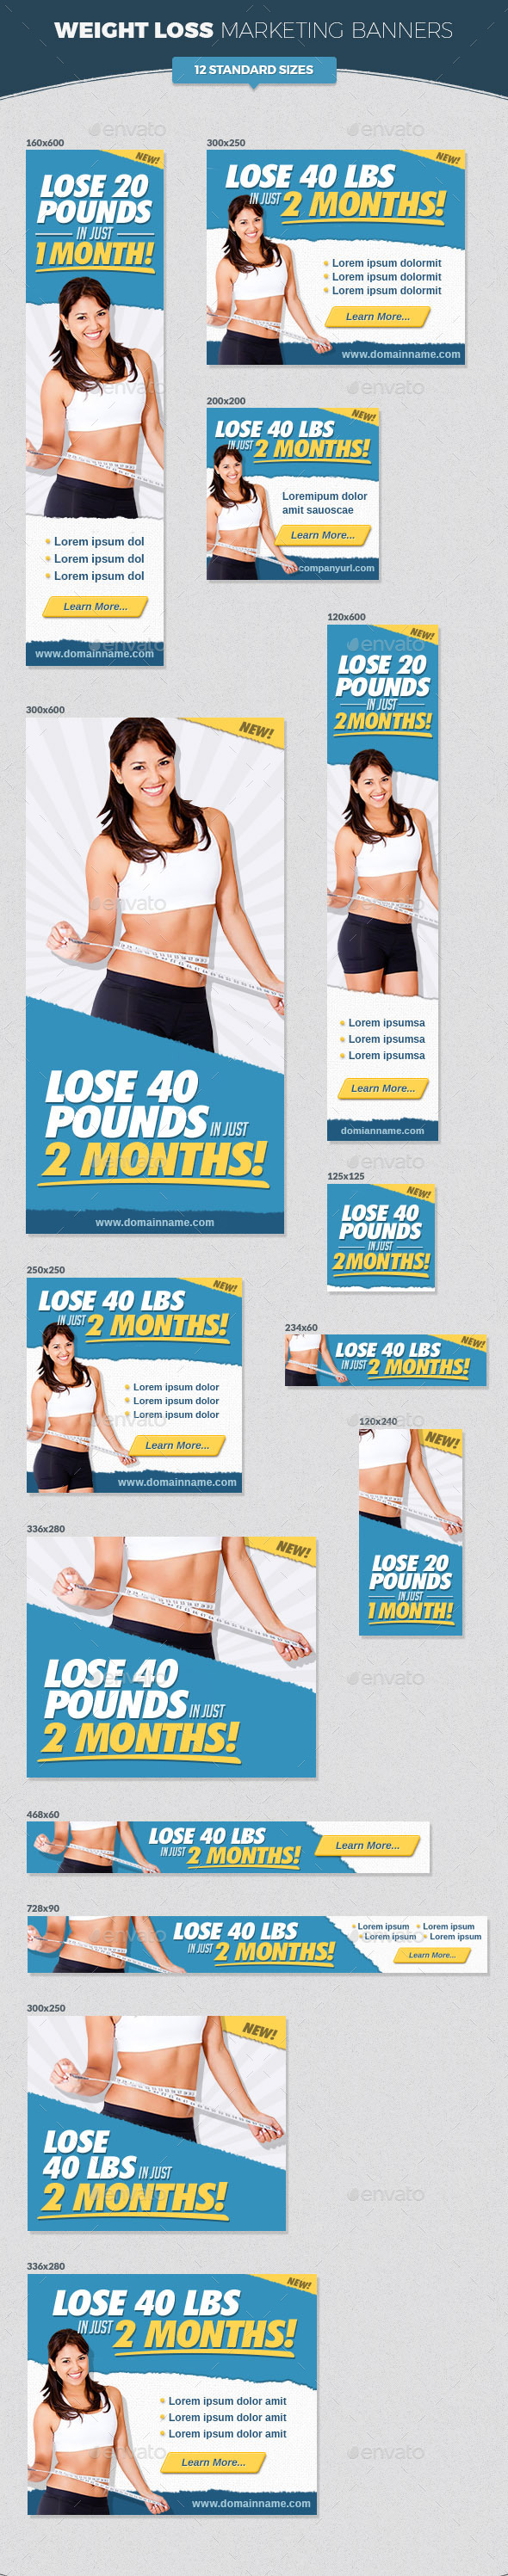 Pin By Magnetizmo On Adwords Tips Pinterest Web Banner Banner